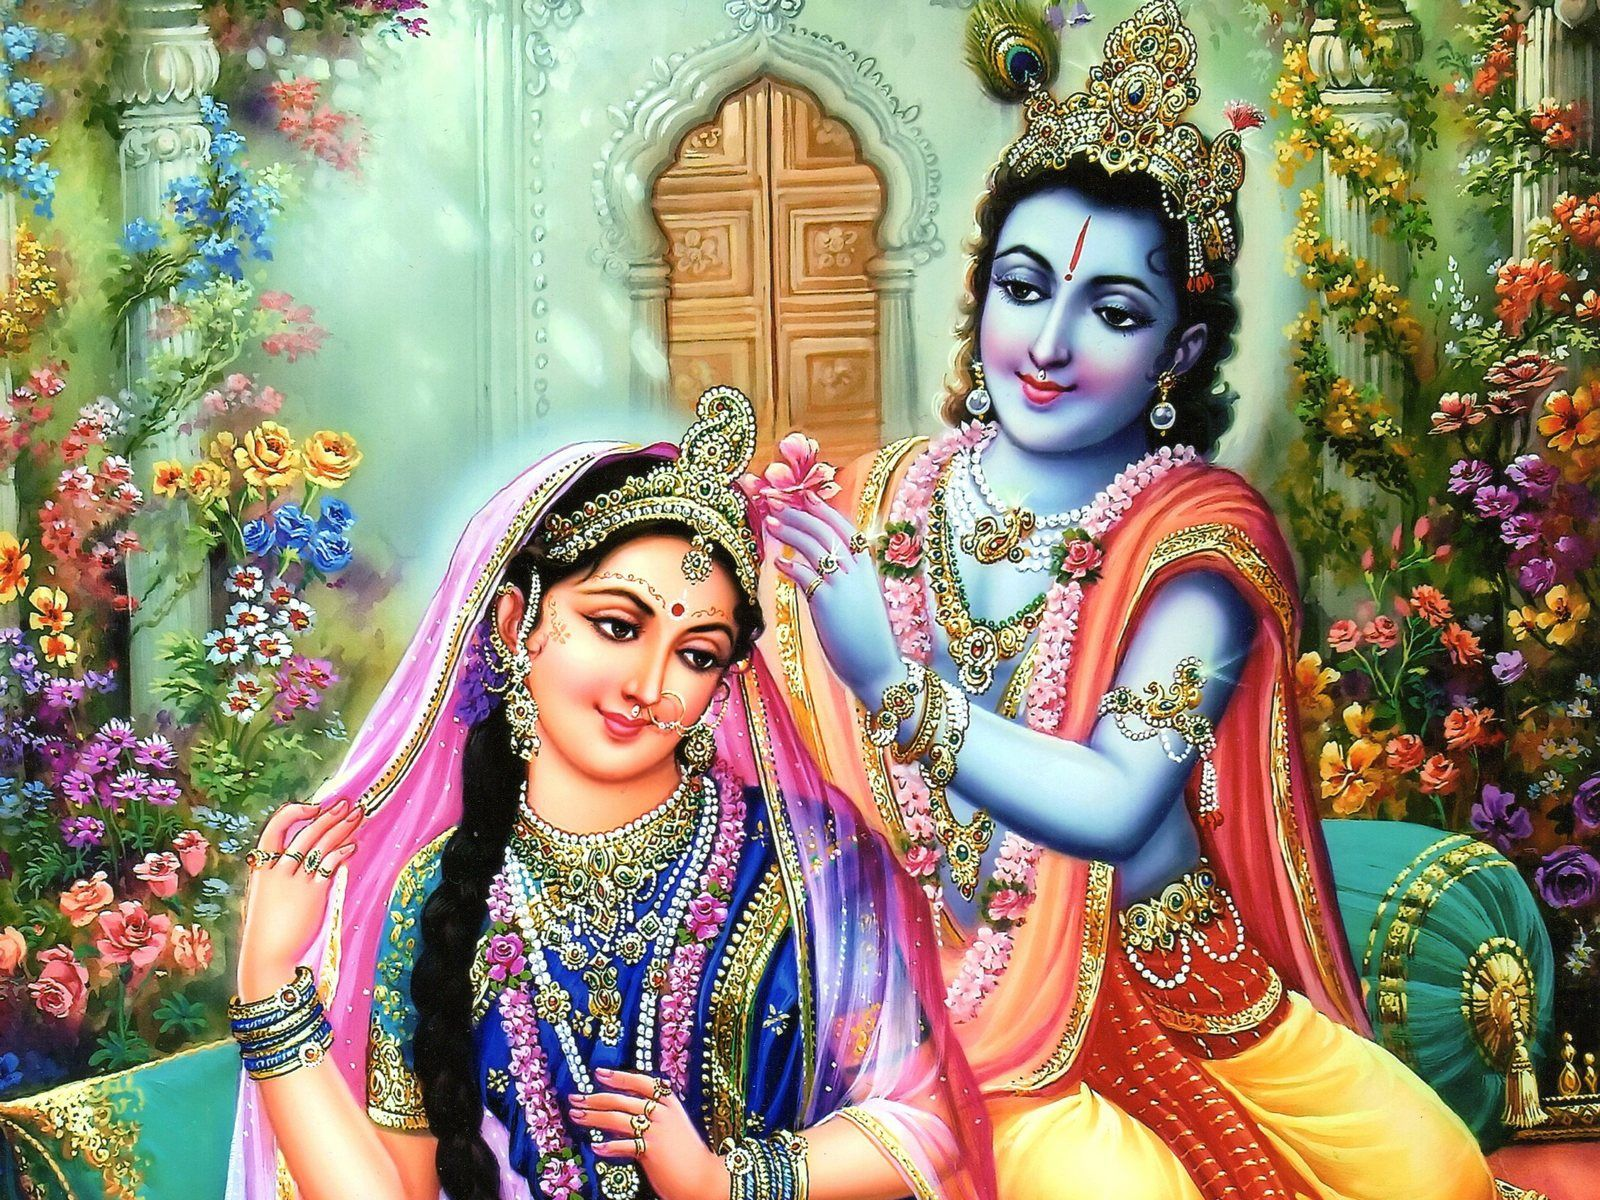 Hd wallpaper krishna and radha - Bhagwan Krishna With Radha Hd Wallpaper Pics Imgs Hd Full